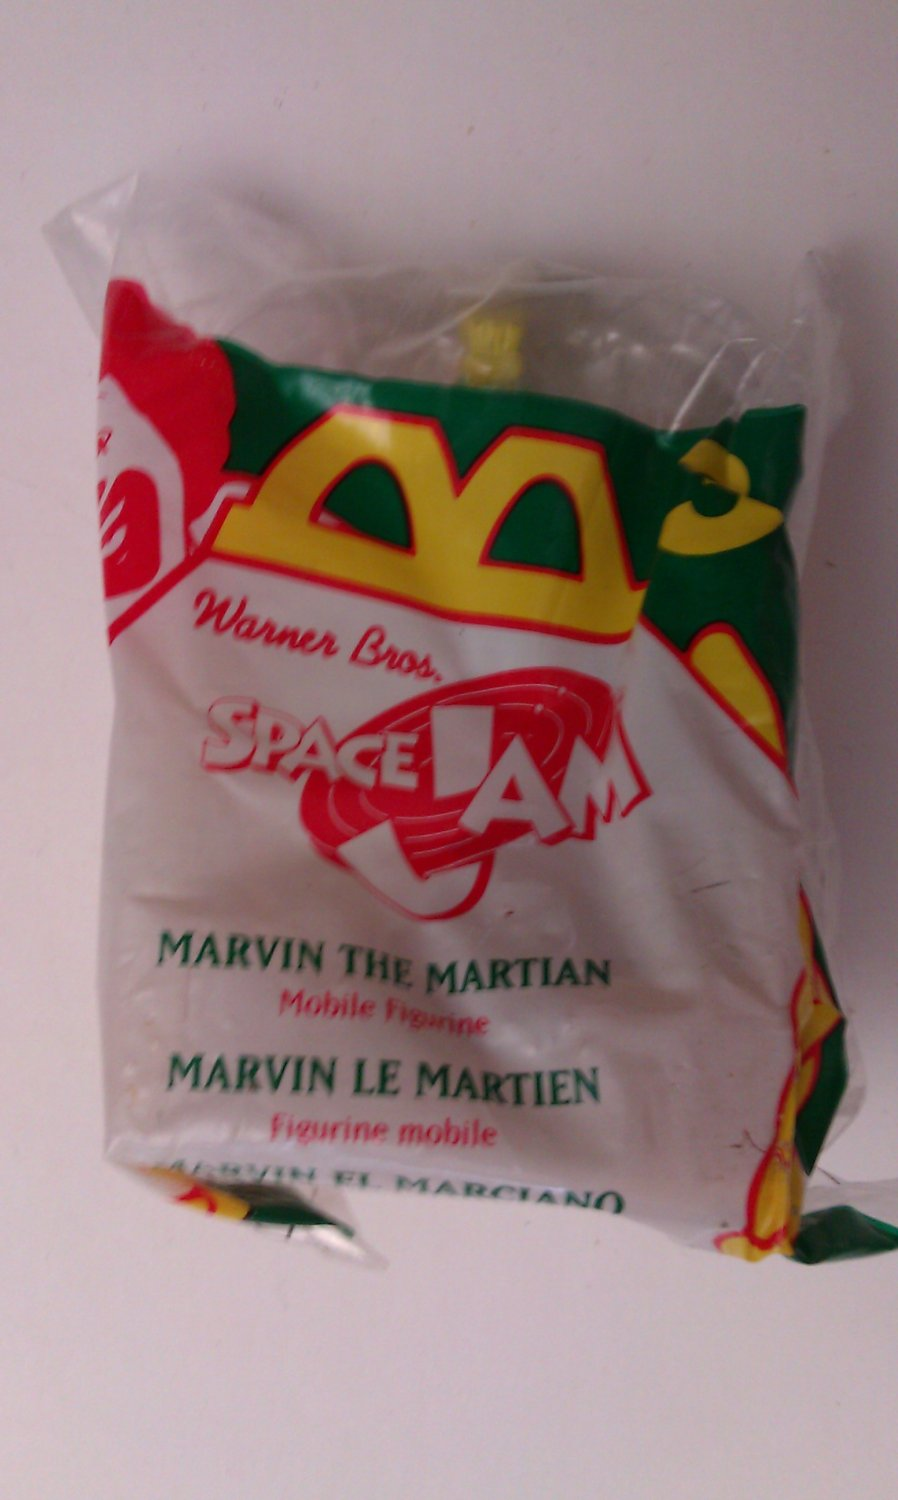 1996 Space Jam McDonalds Happy Meal Toy New In Package Marvin the Martian #3